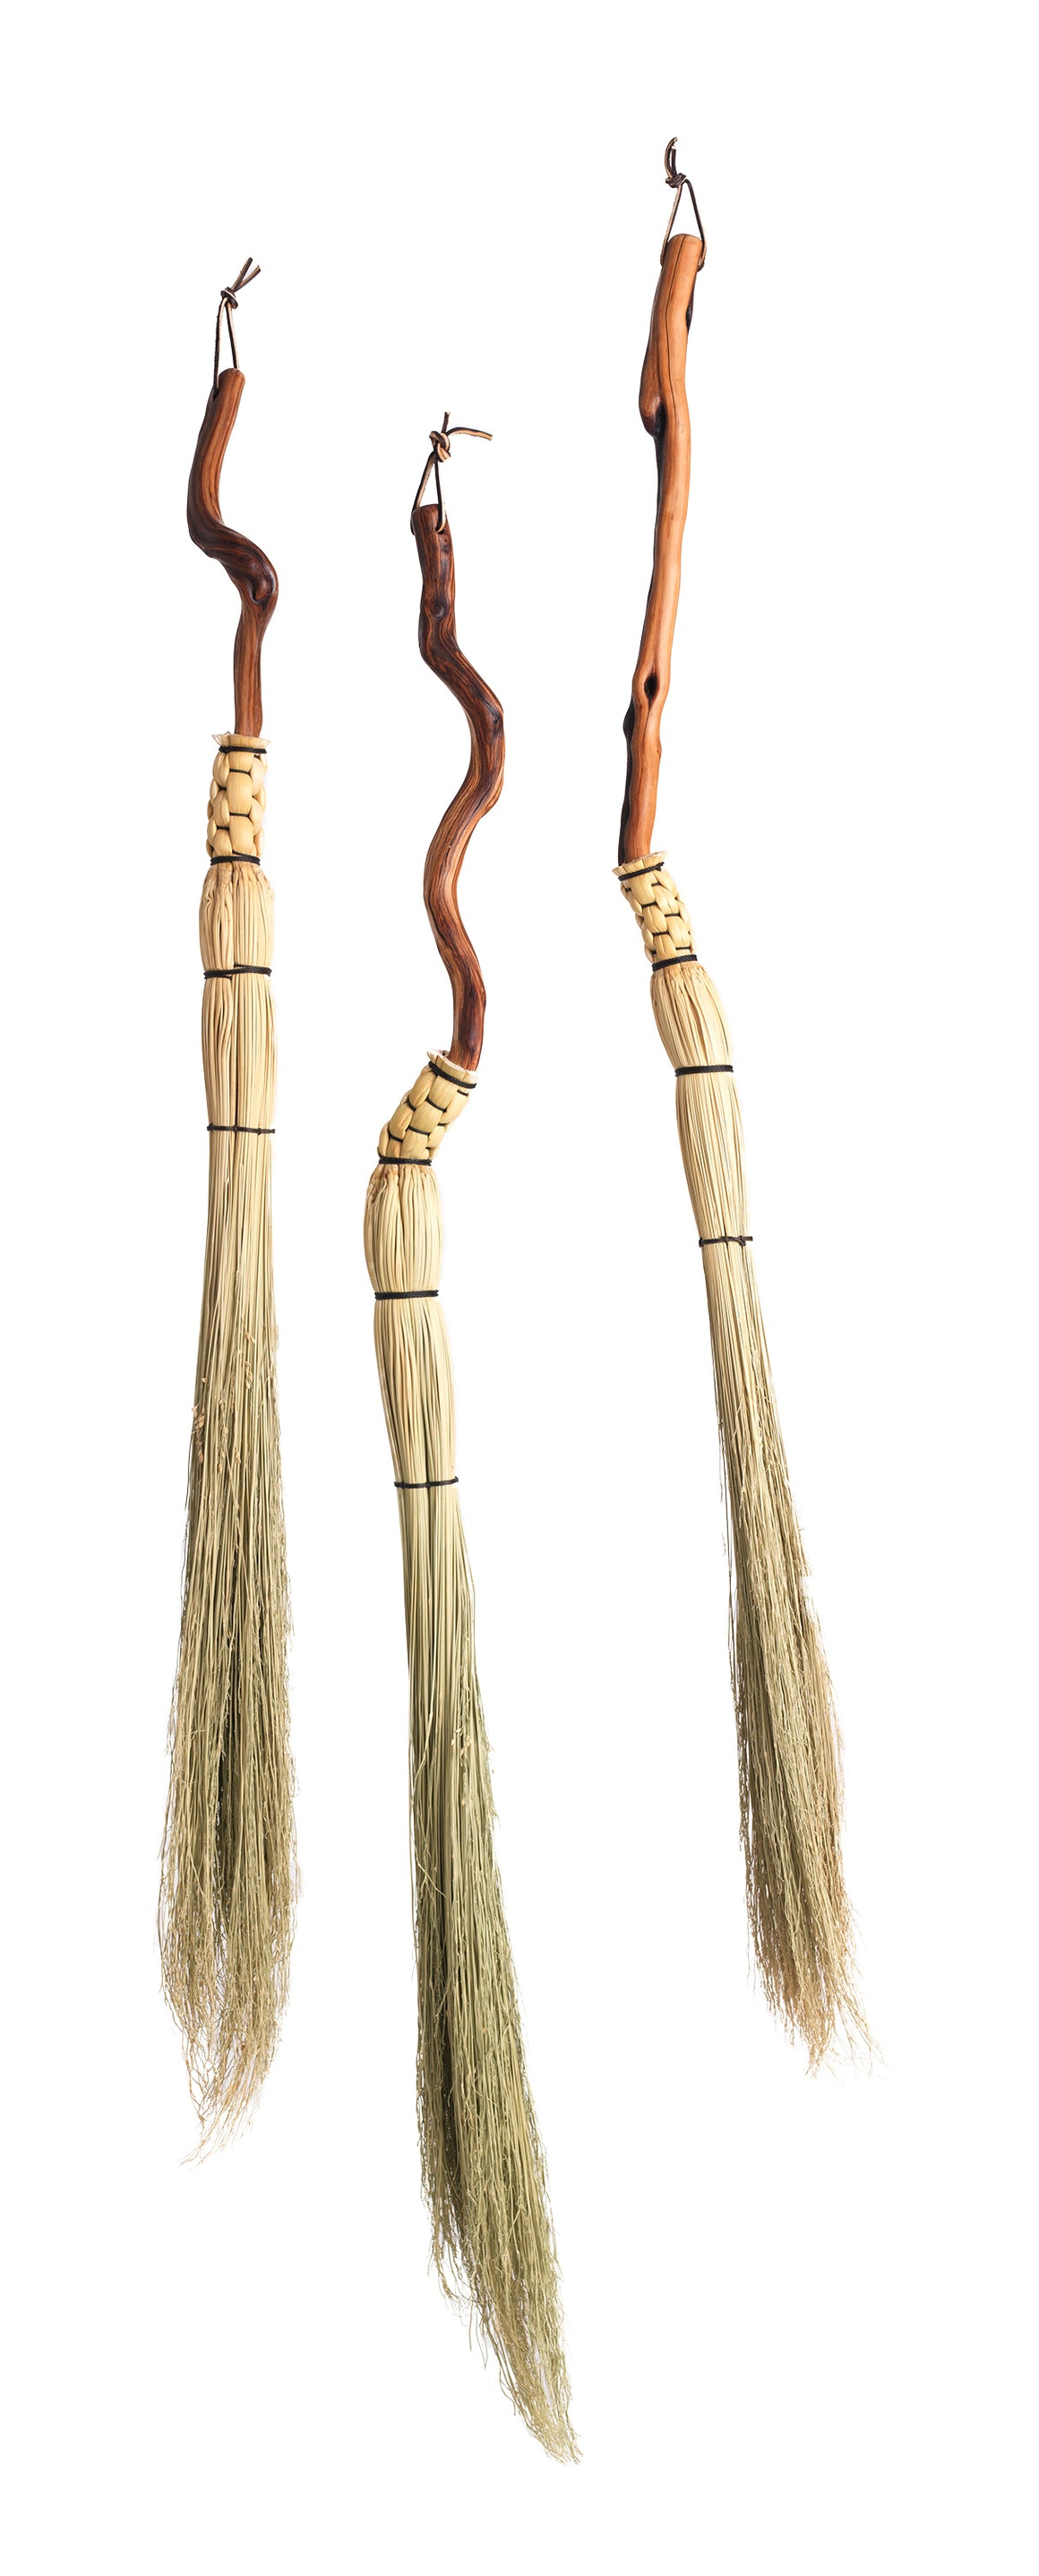 Granville Island Broom Co Manzanita handle cobwebber brooms